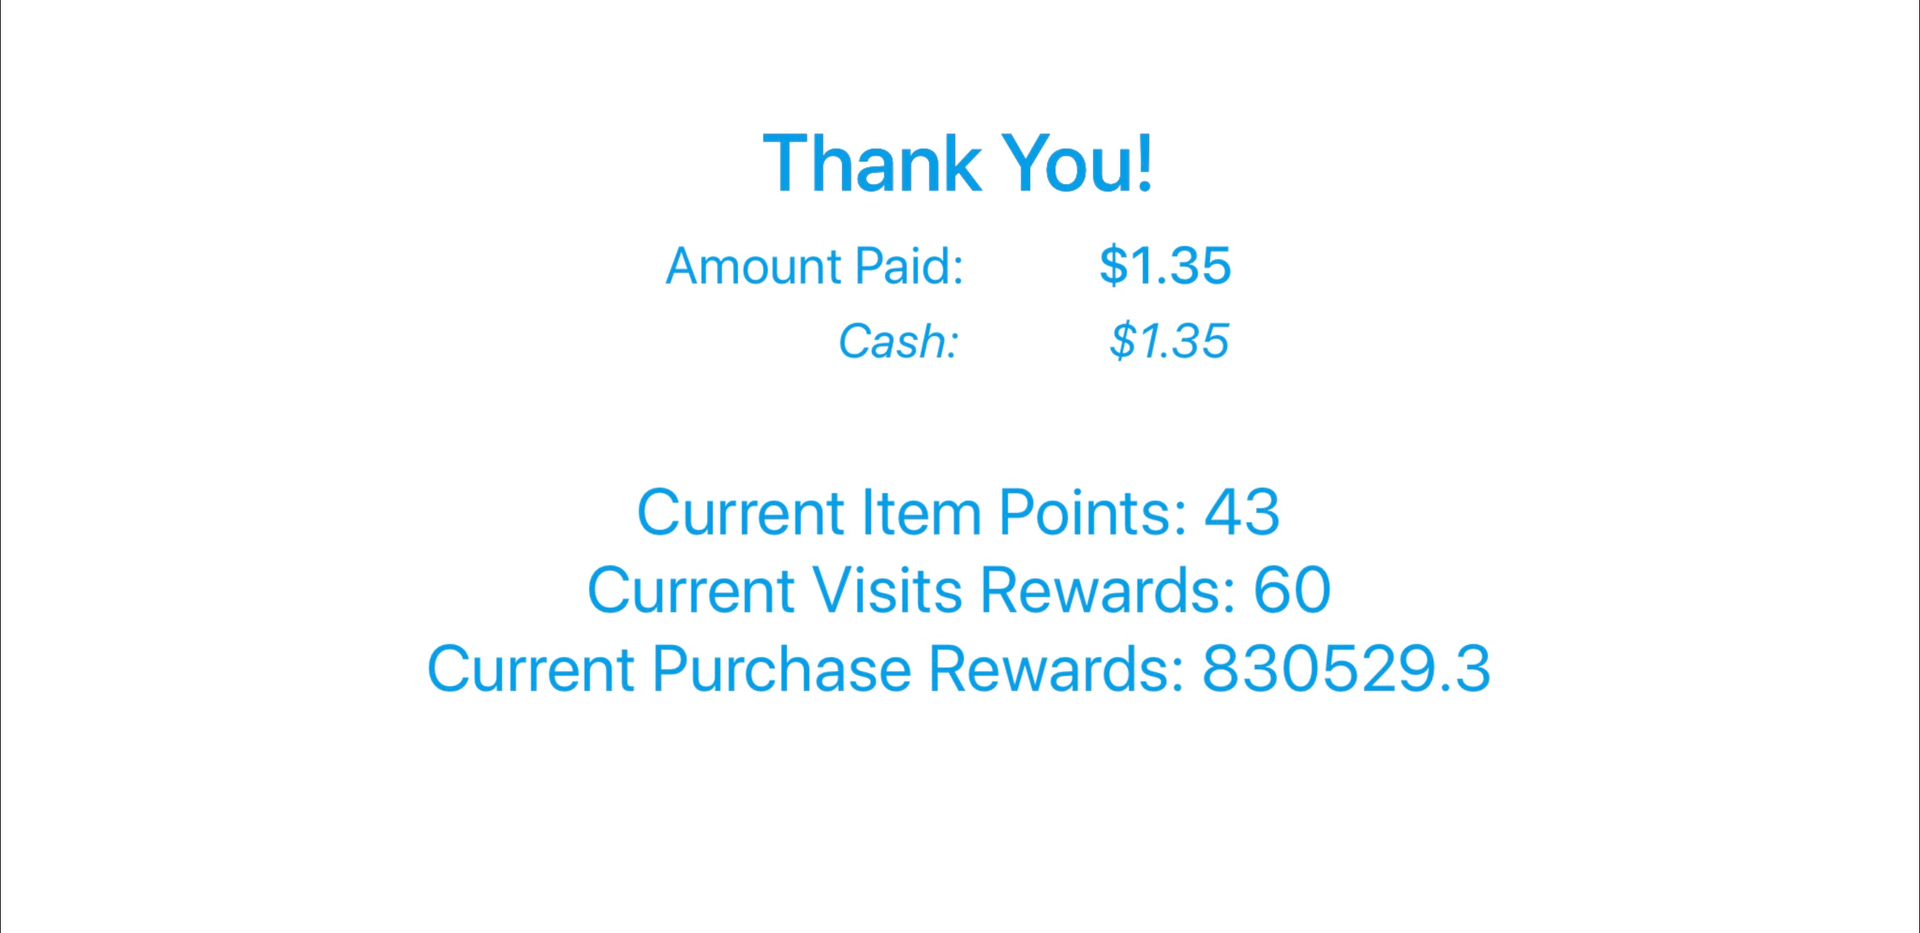 Payment Complete